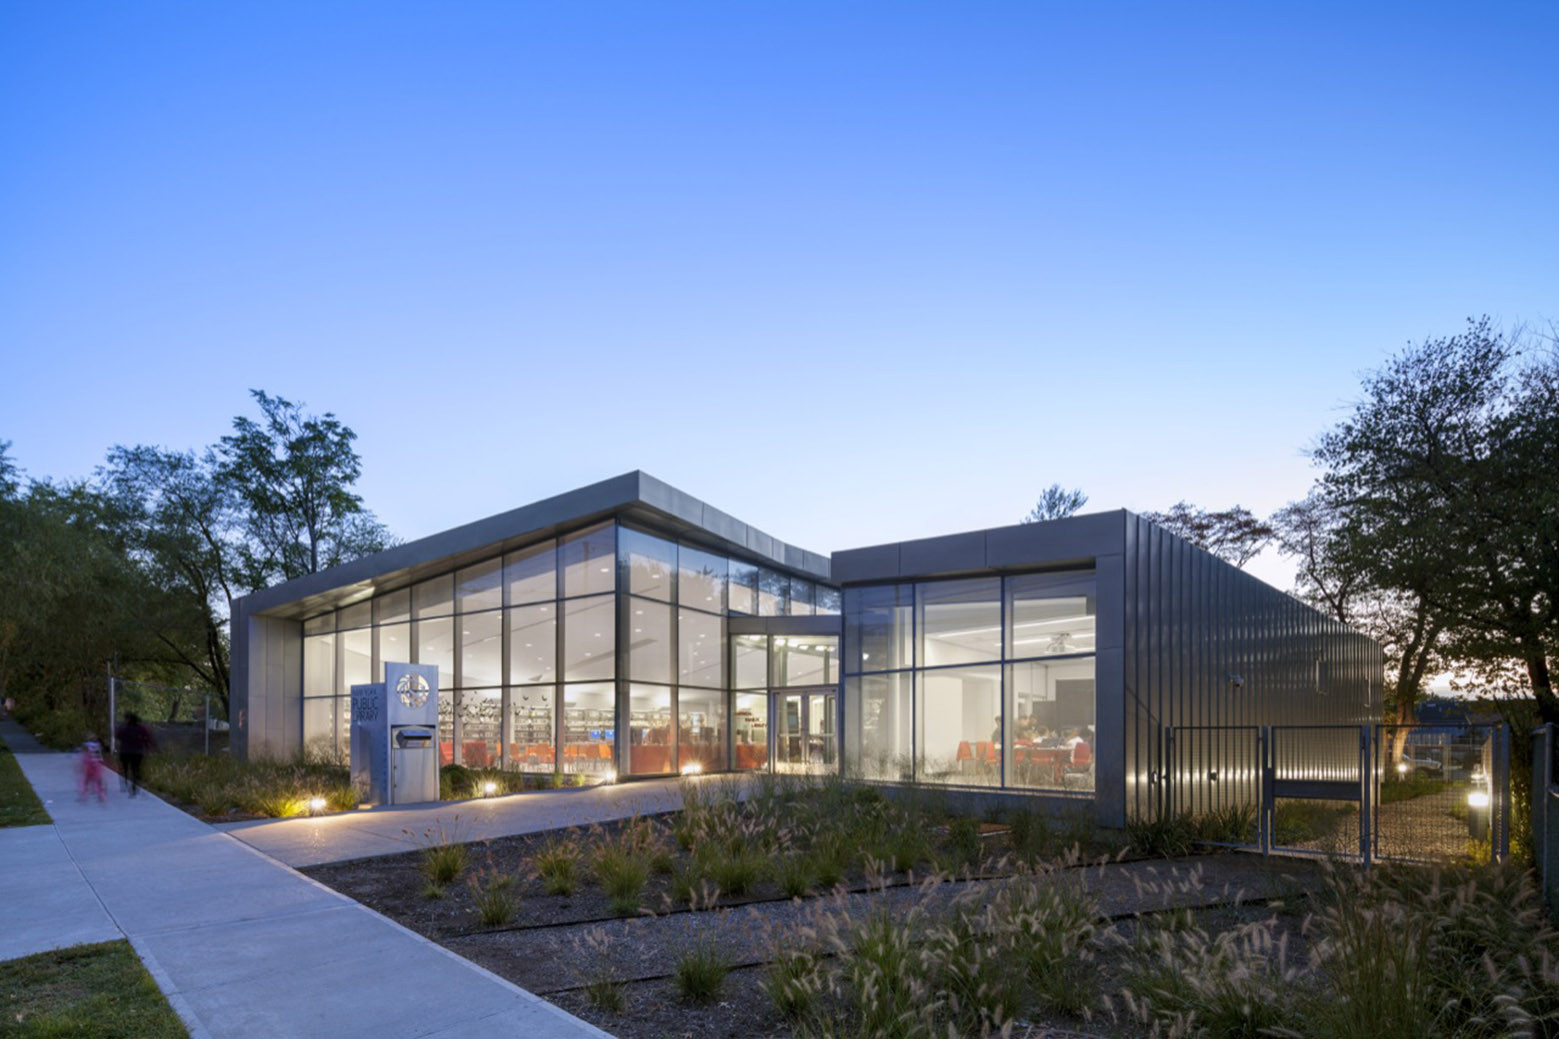 Mariner Harbor Branch Library / A*PT ARCHITECTURE, © Albert Vecerka / Esto